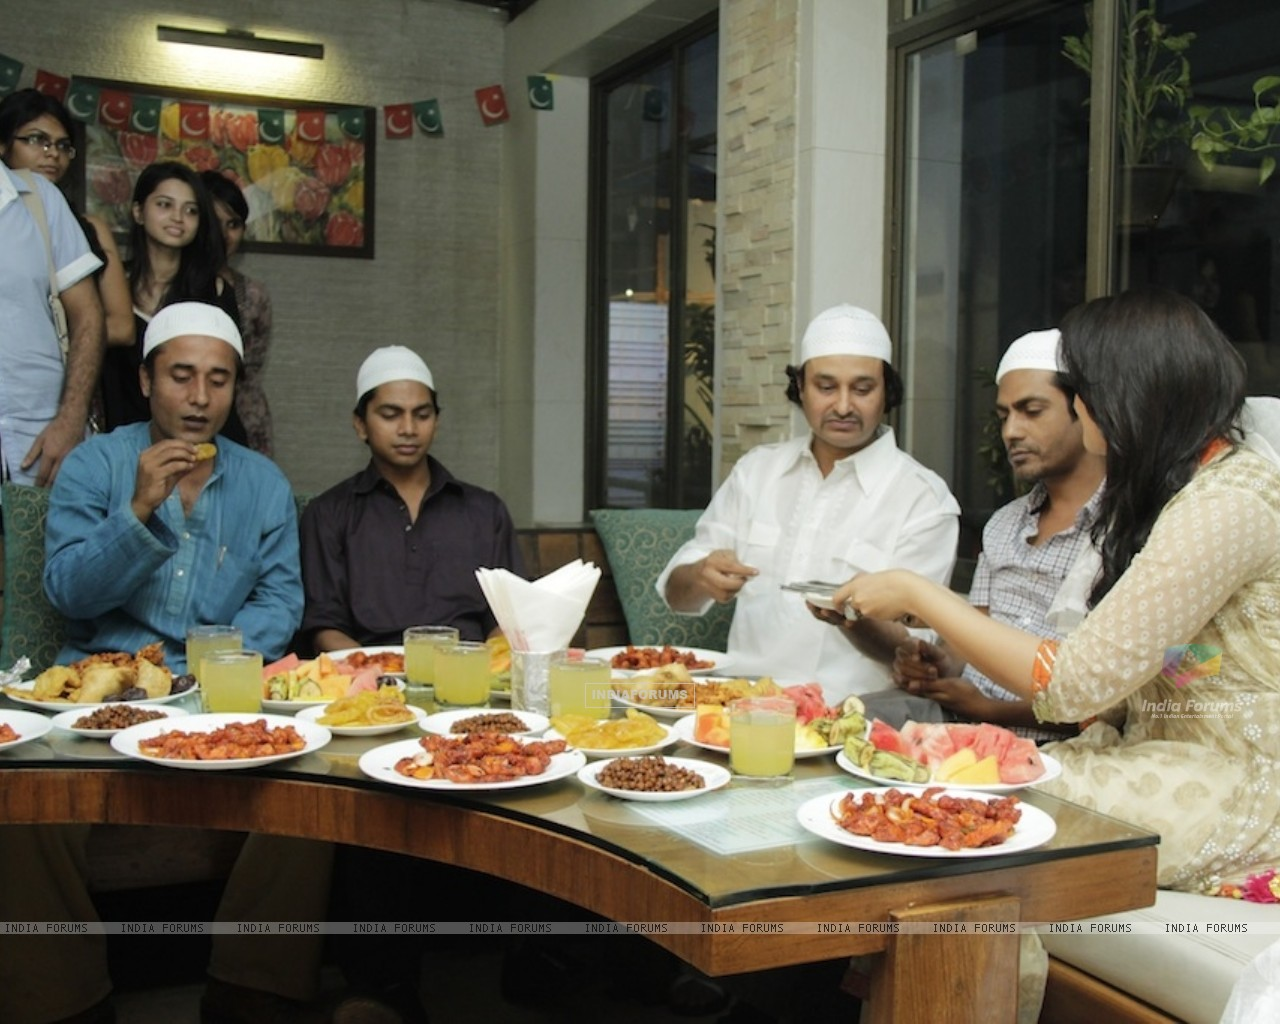 Gangs Of Wassepur iiftar party at Shalimar Hotel (220568) size:1280x1024